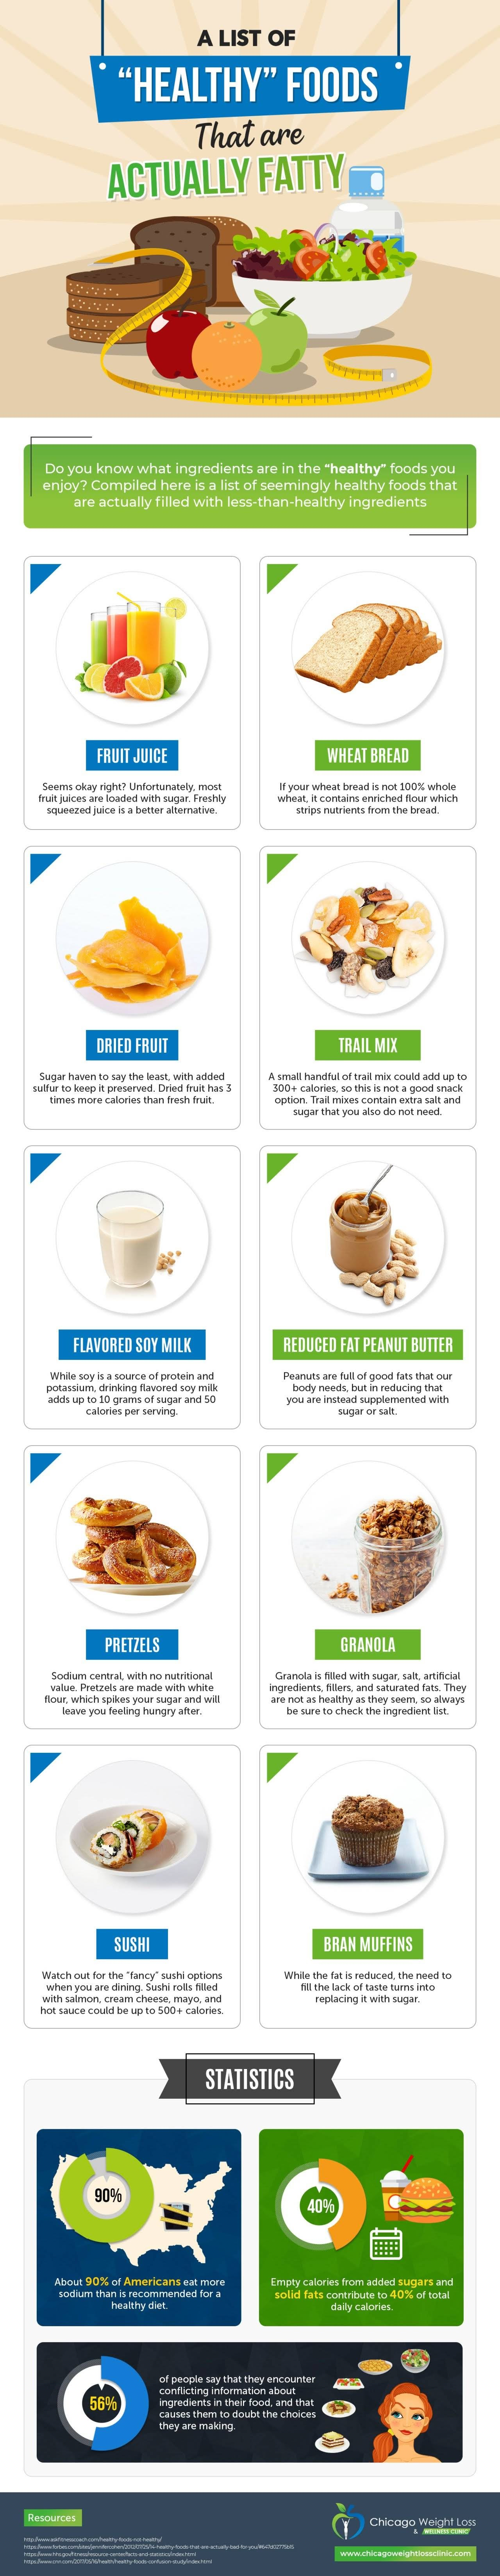 A List of Healthy Foods That Are Actually Fatty